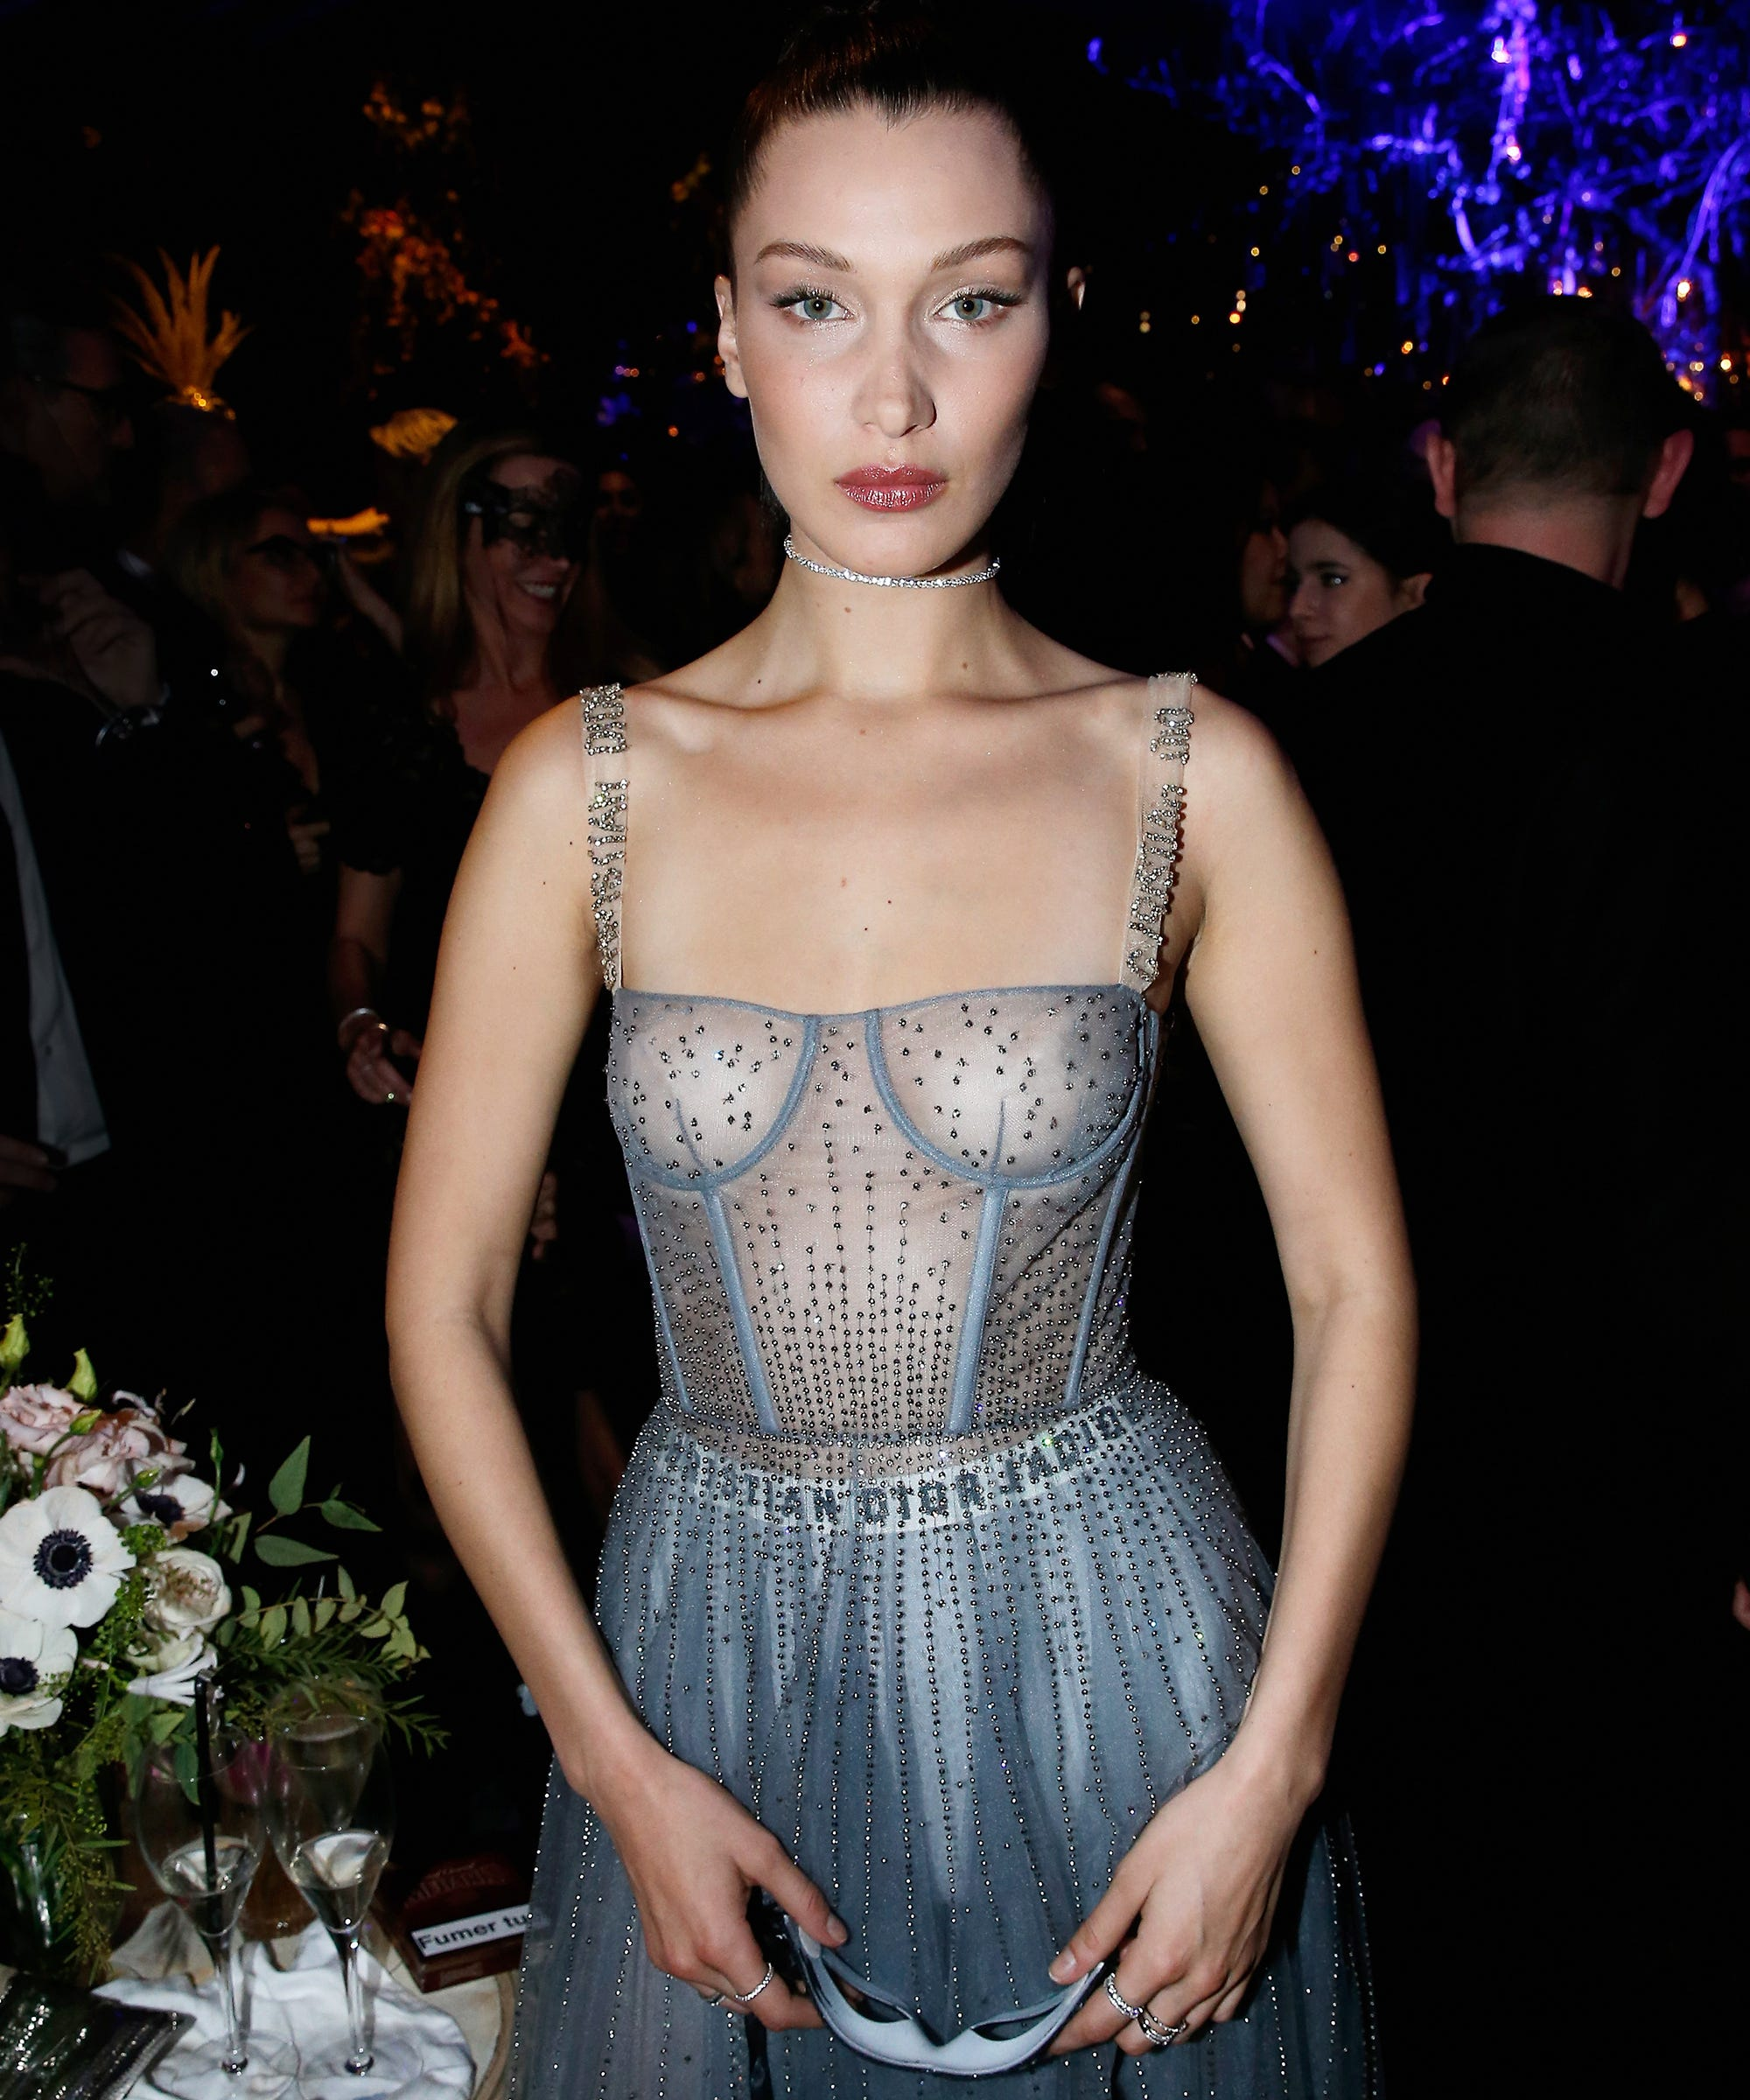 Bella Hadid freed the nipple at a fancy Paris Fashion Week party